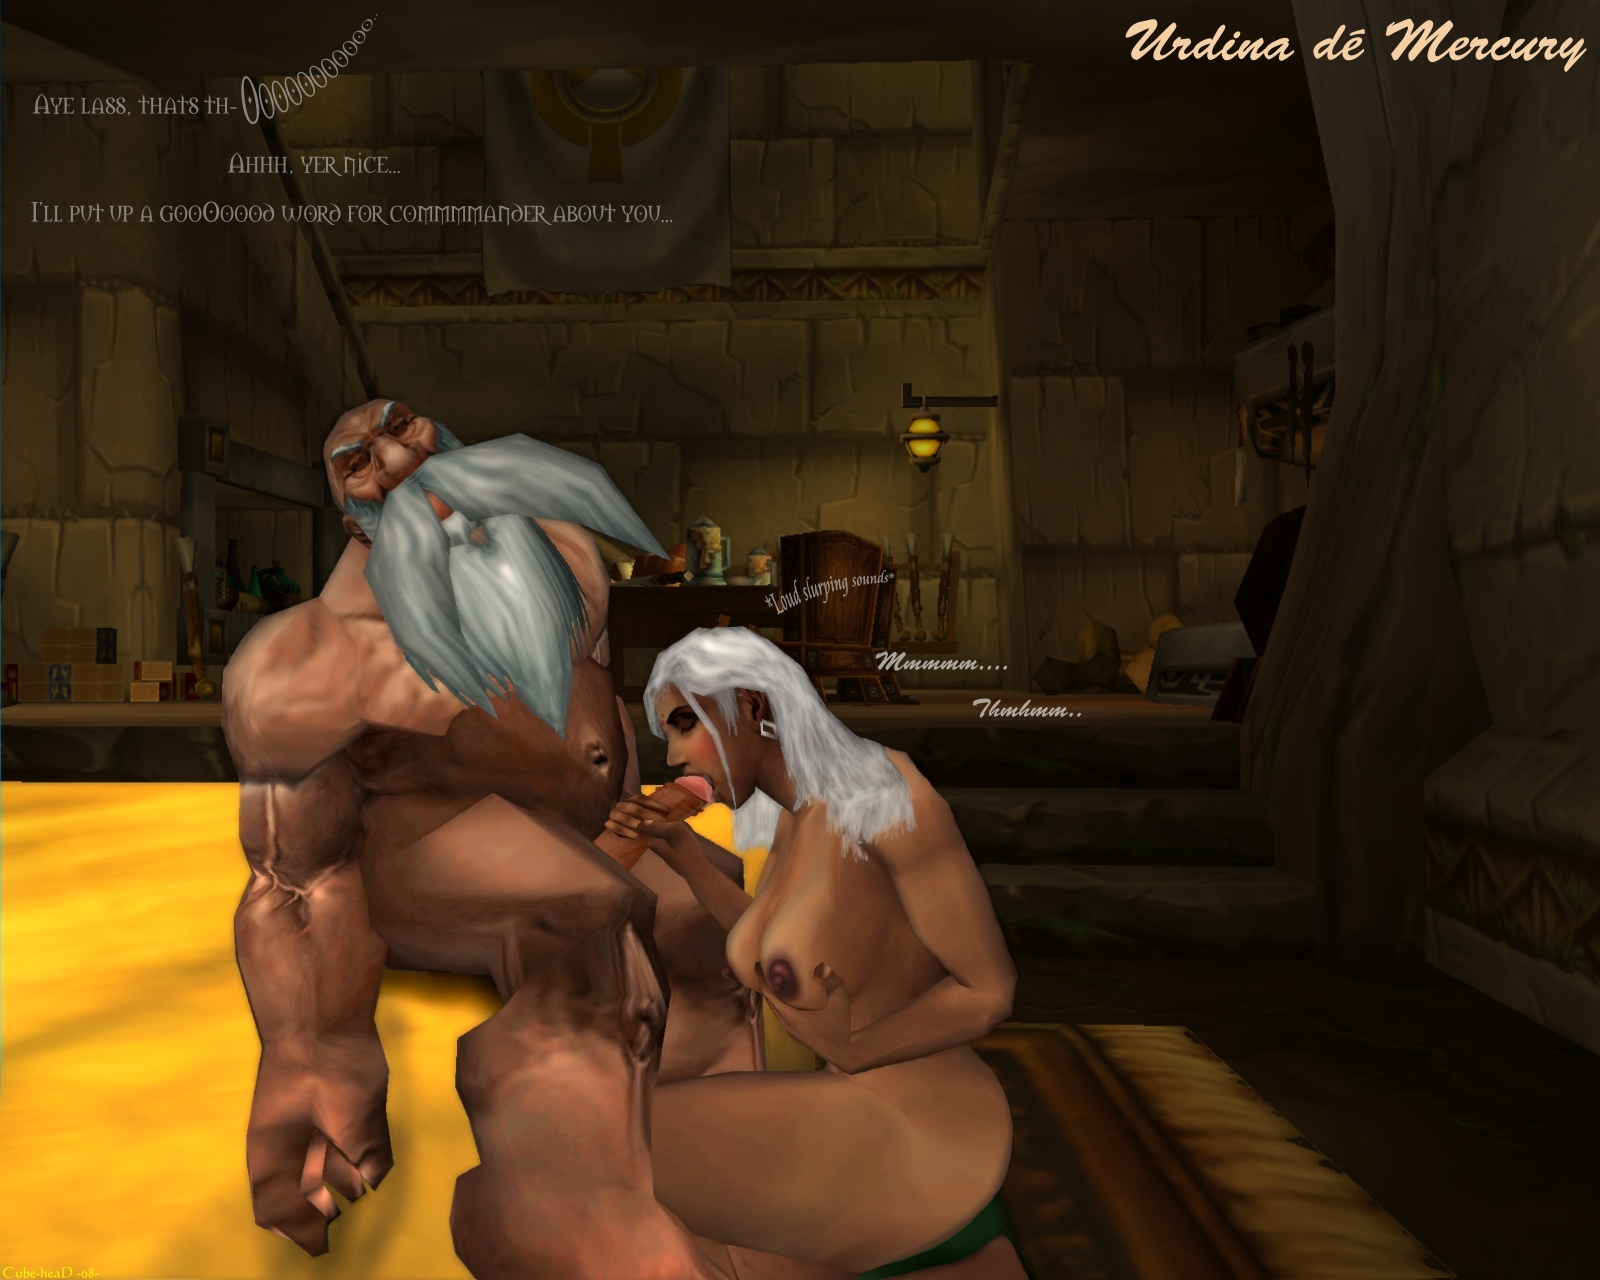 Warcraft sex 3gp download sexy photos